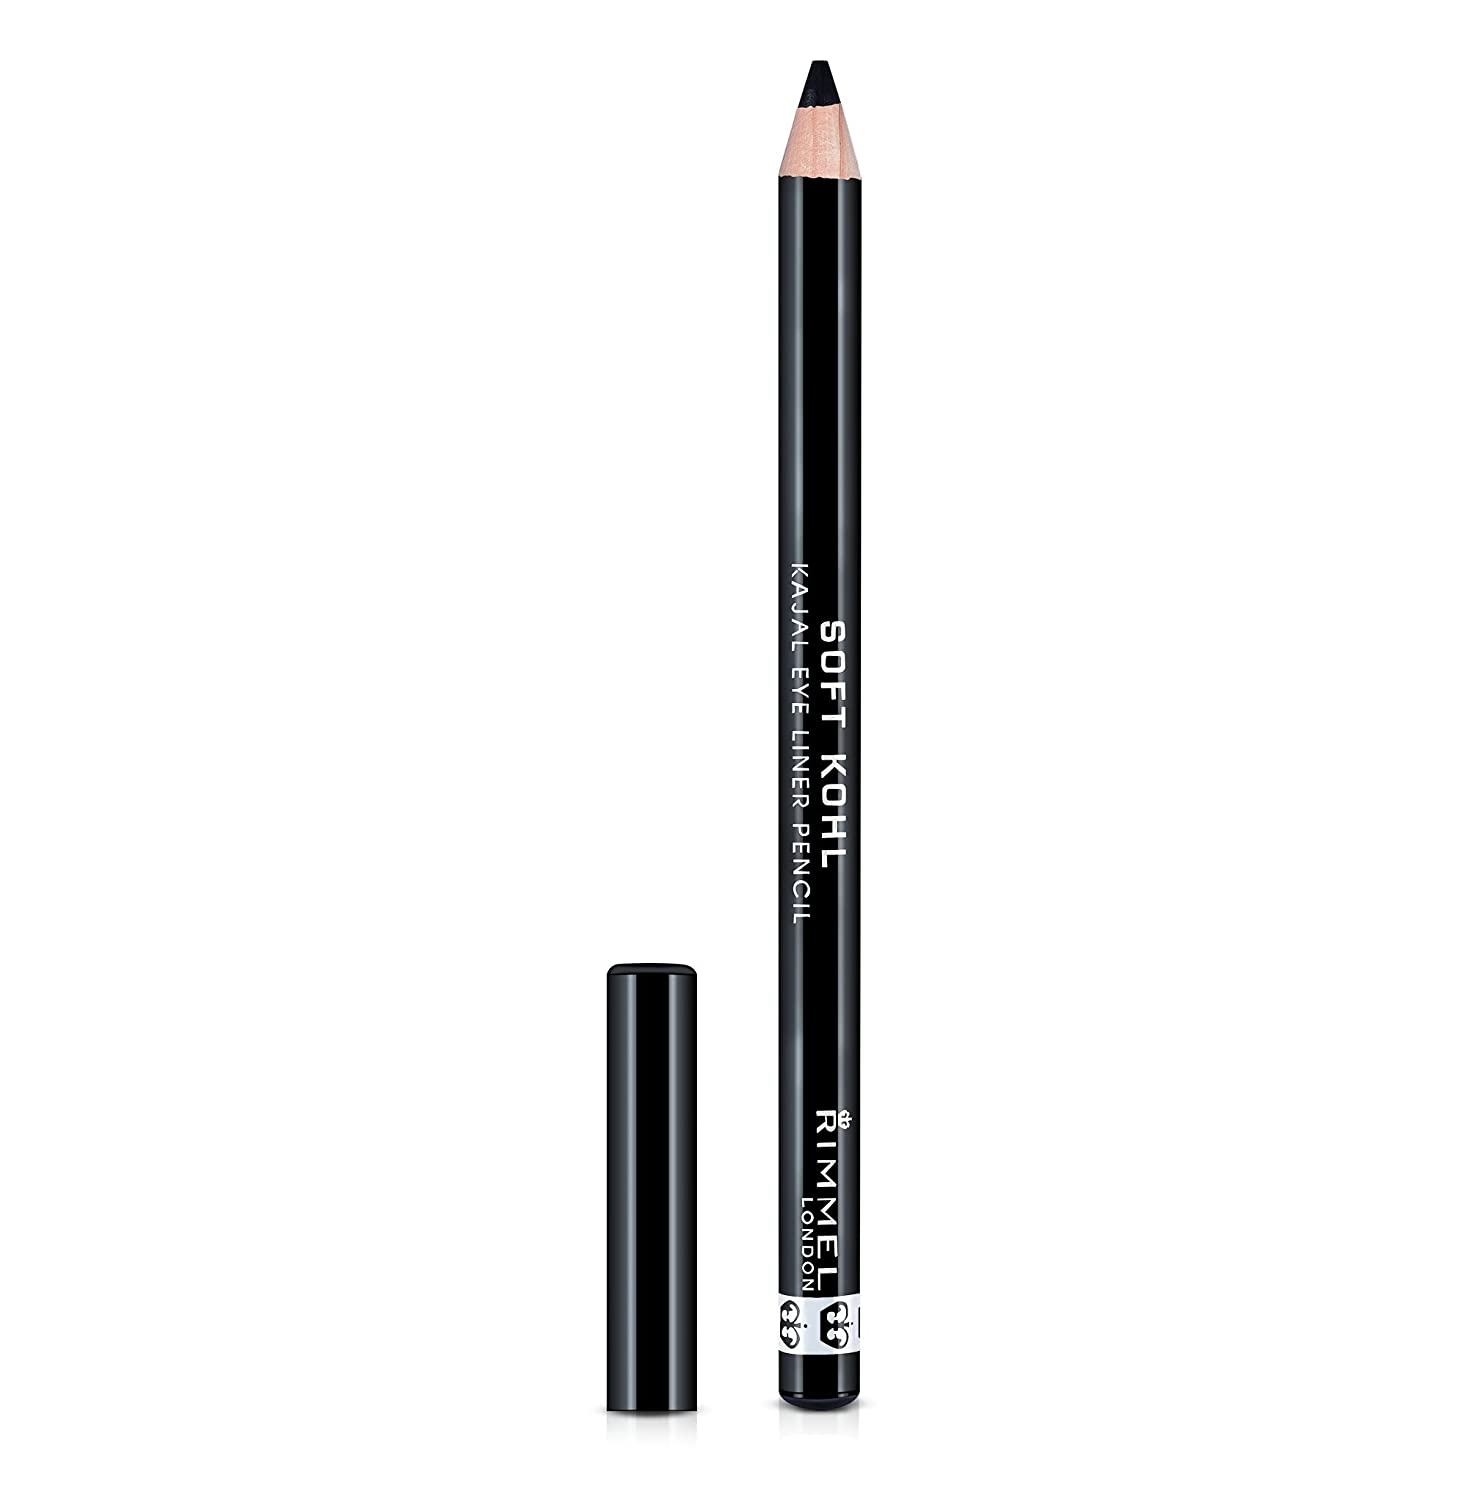 RIMMEL LONDON Soft Kohl Kajal Eye Liner Pencil - Jet Black 34788497061